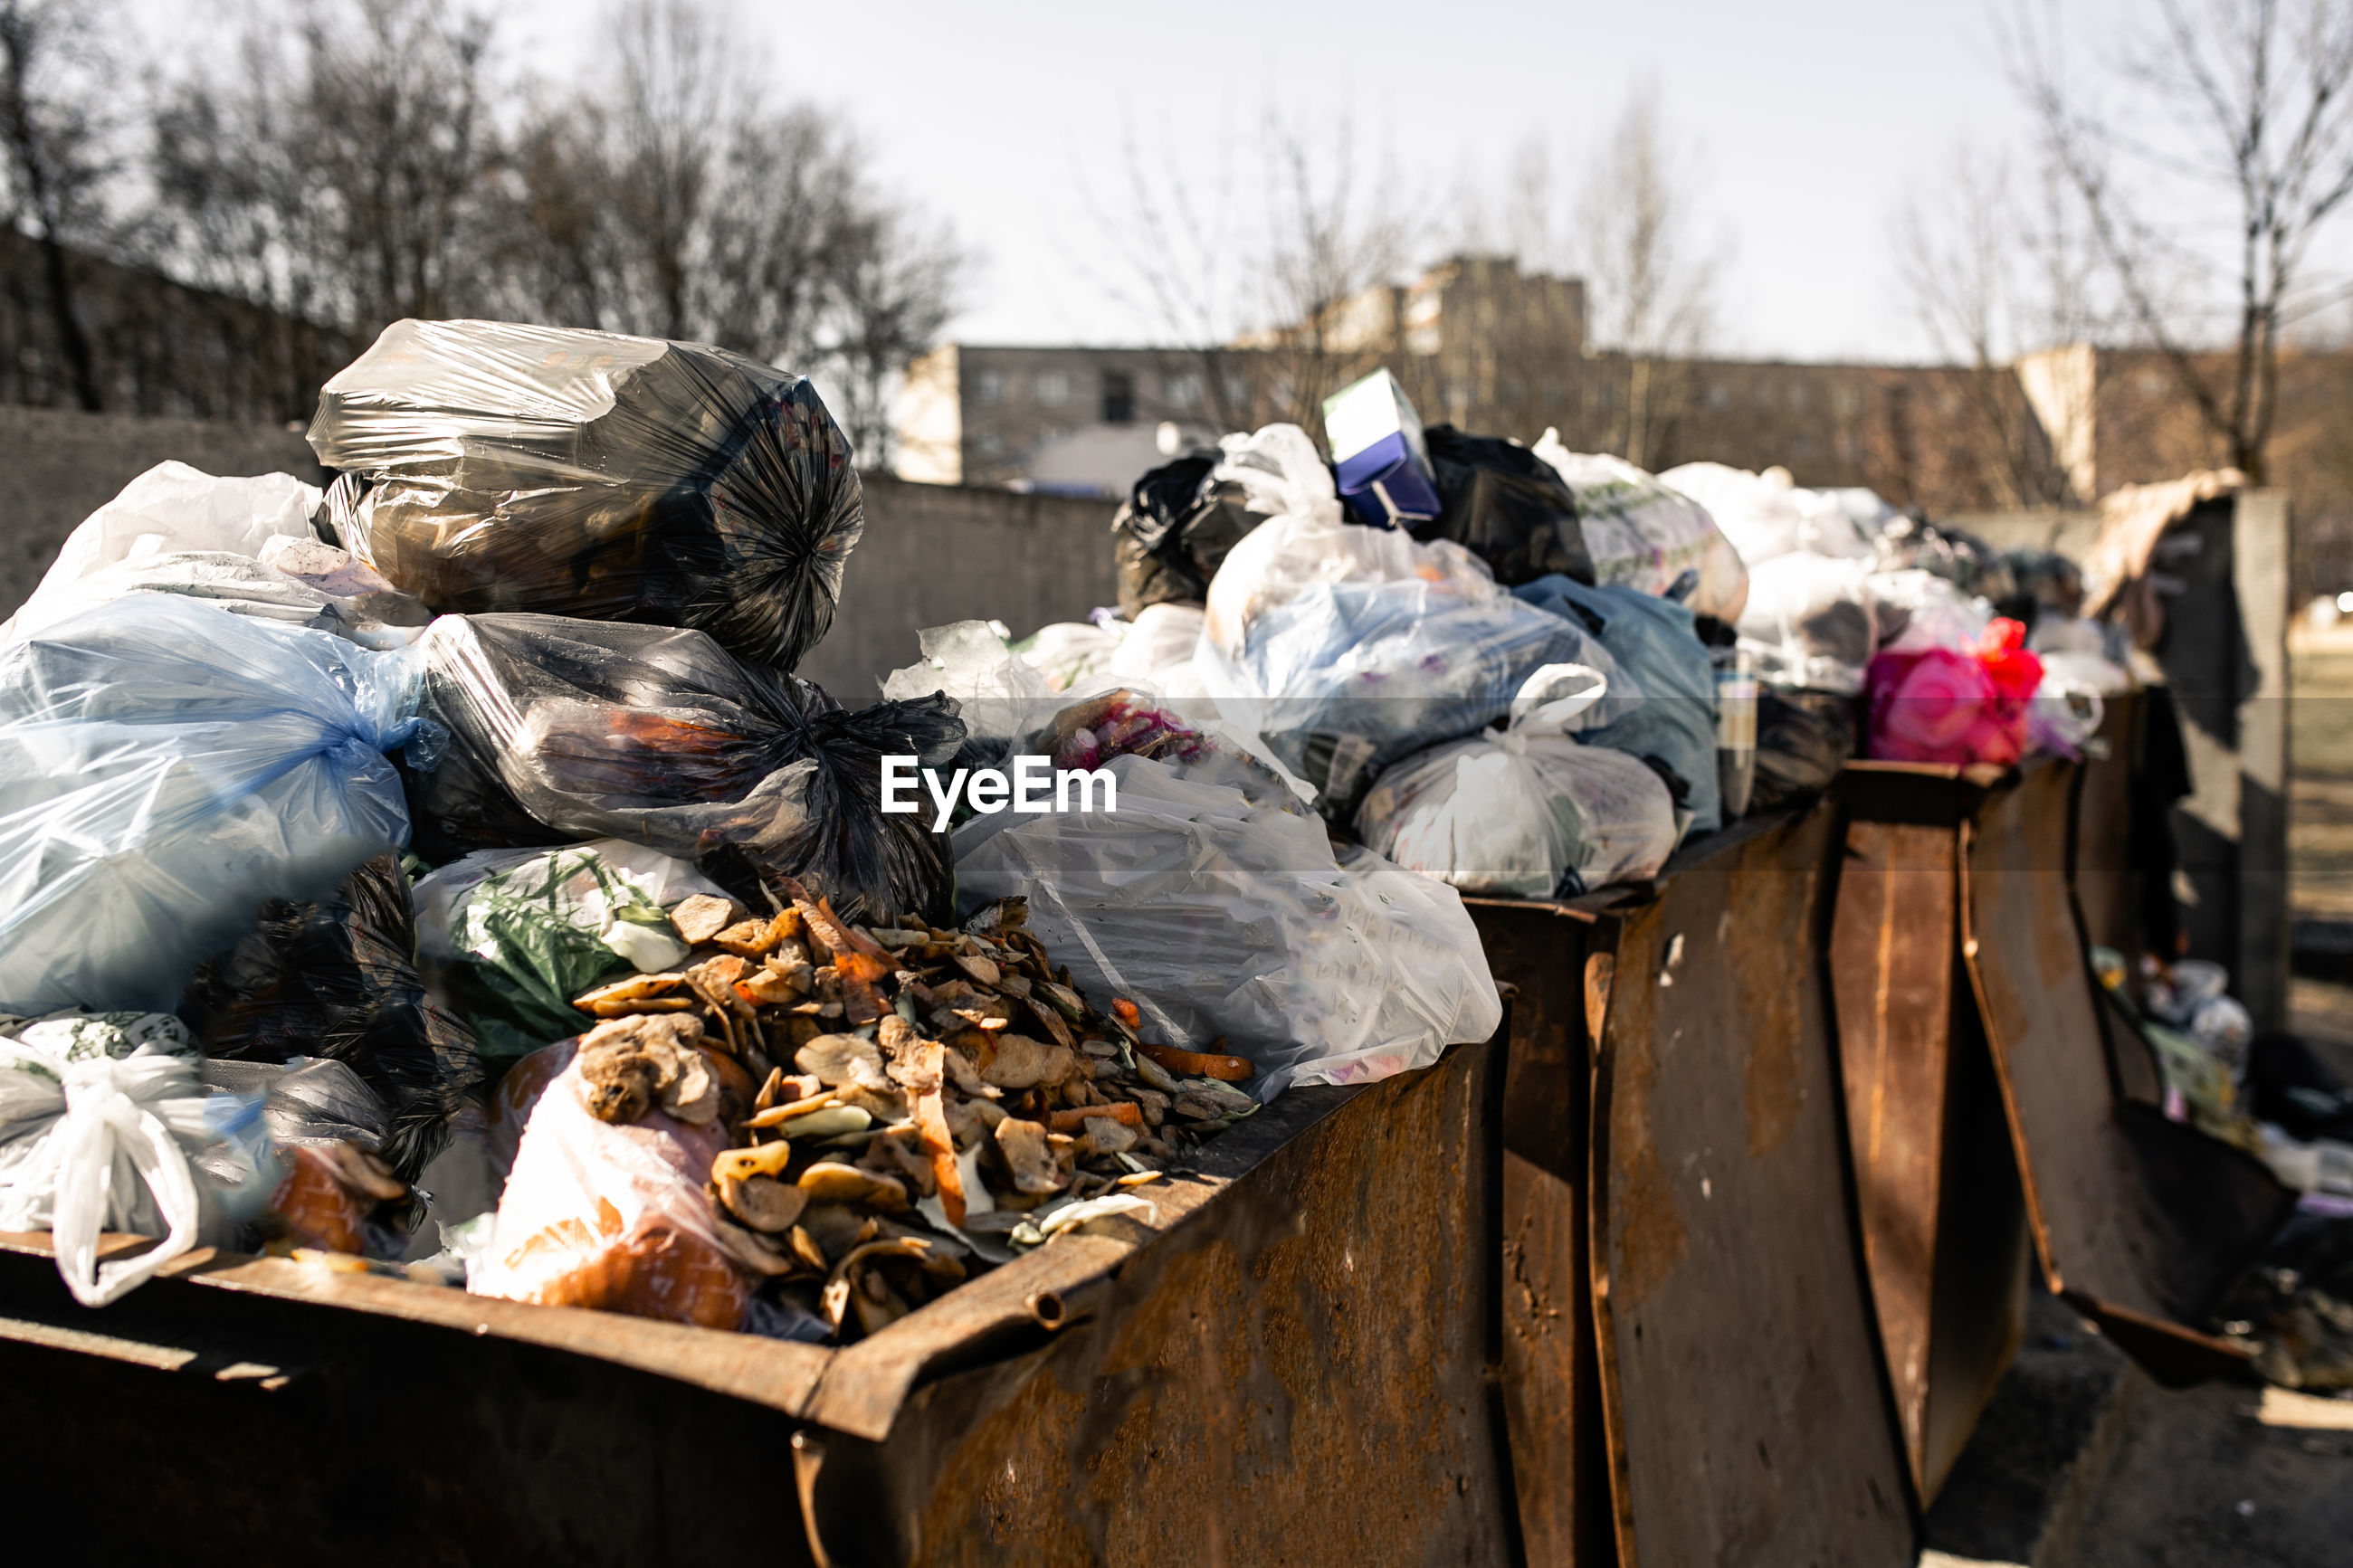 Heap of garbage outdoors